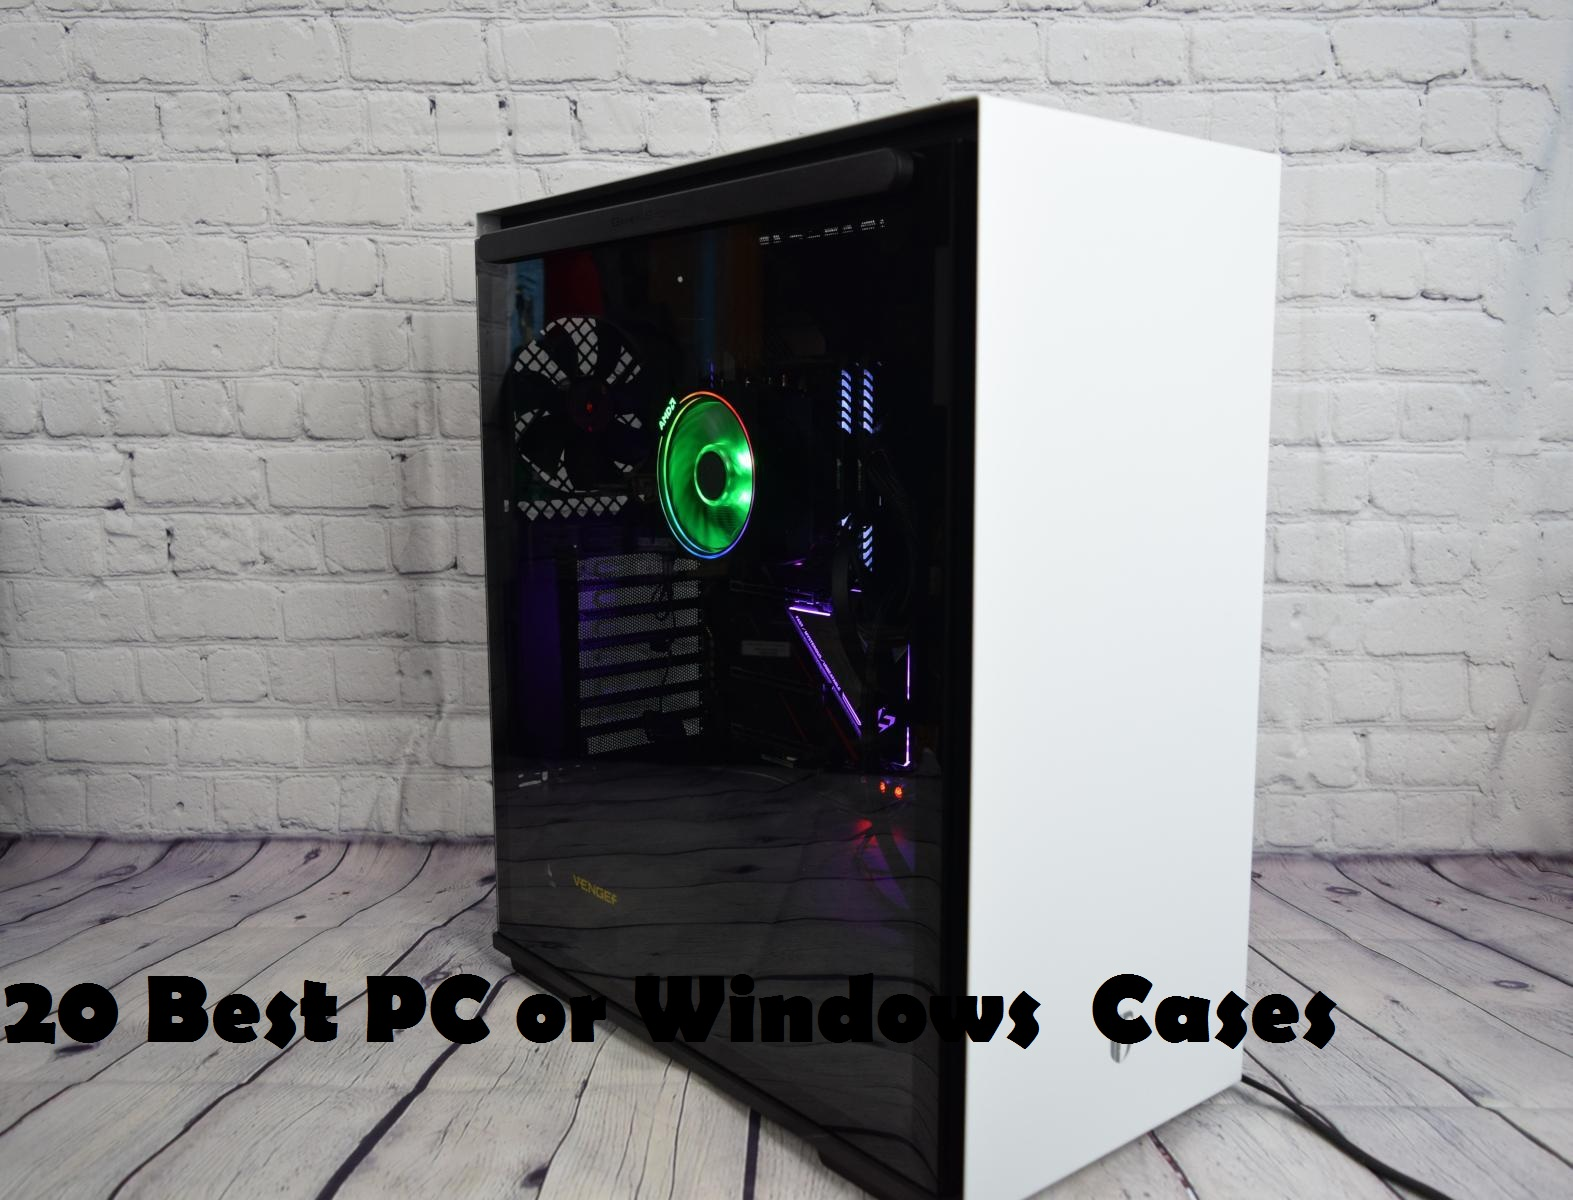 20 Best PC or Windows Cases